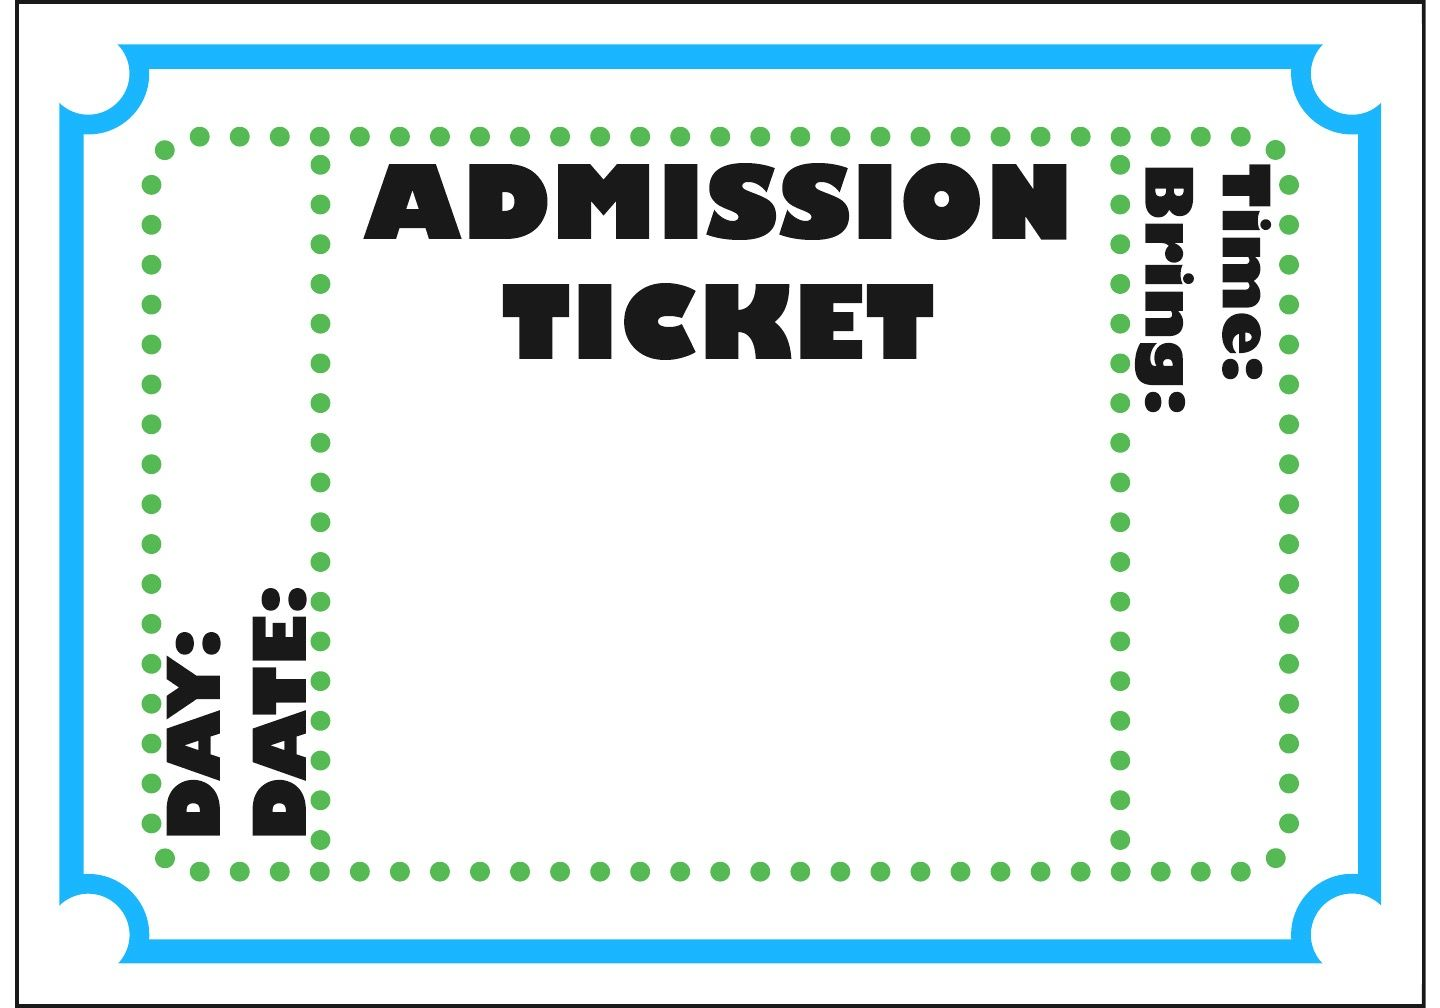 Free Printable Admit One Ticket Template Clipart Best This Is In Jpeg Format And Can Be Used As Movie Ticket Template Ticket Template Printable Ticket Template Free admit one ticket template